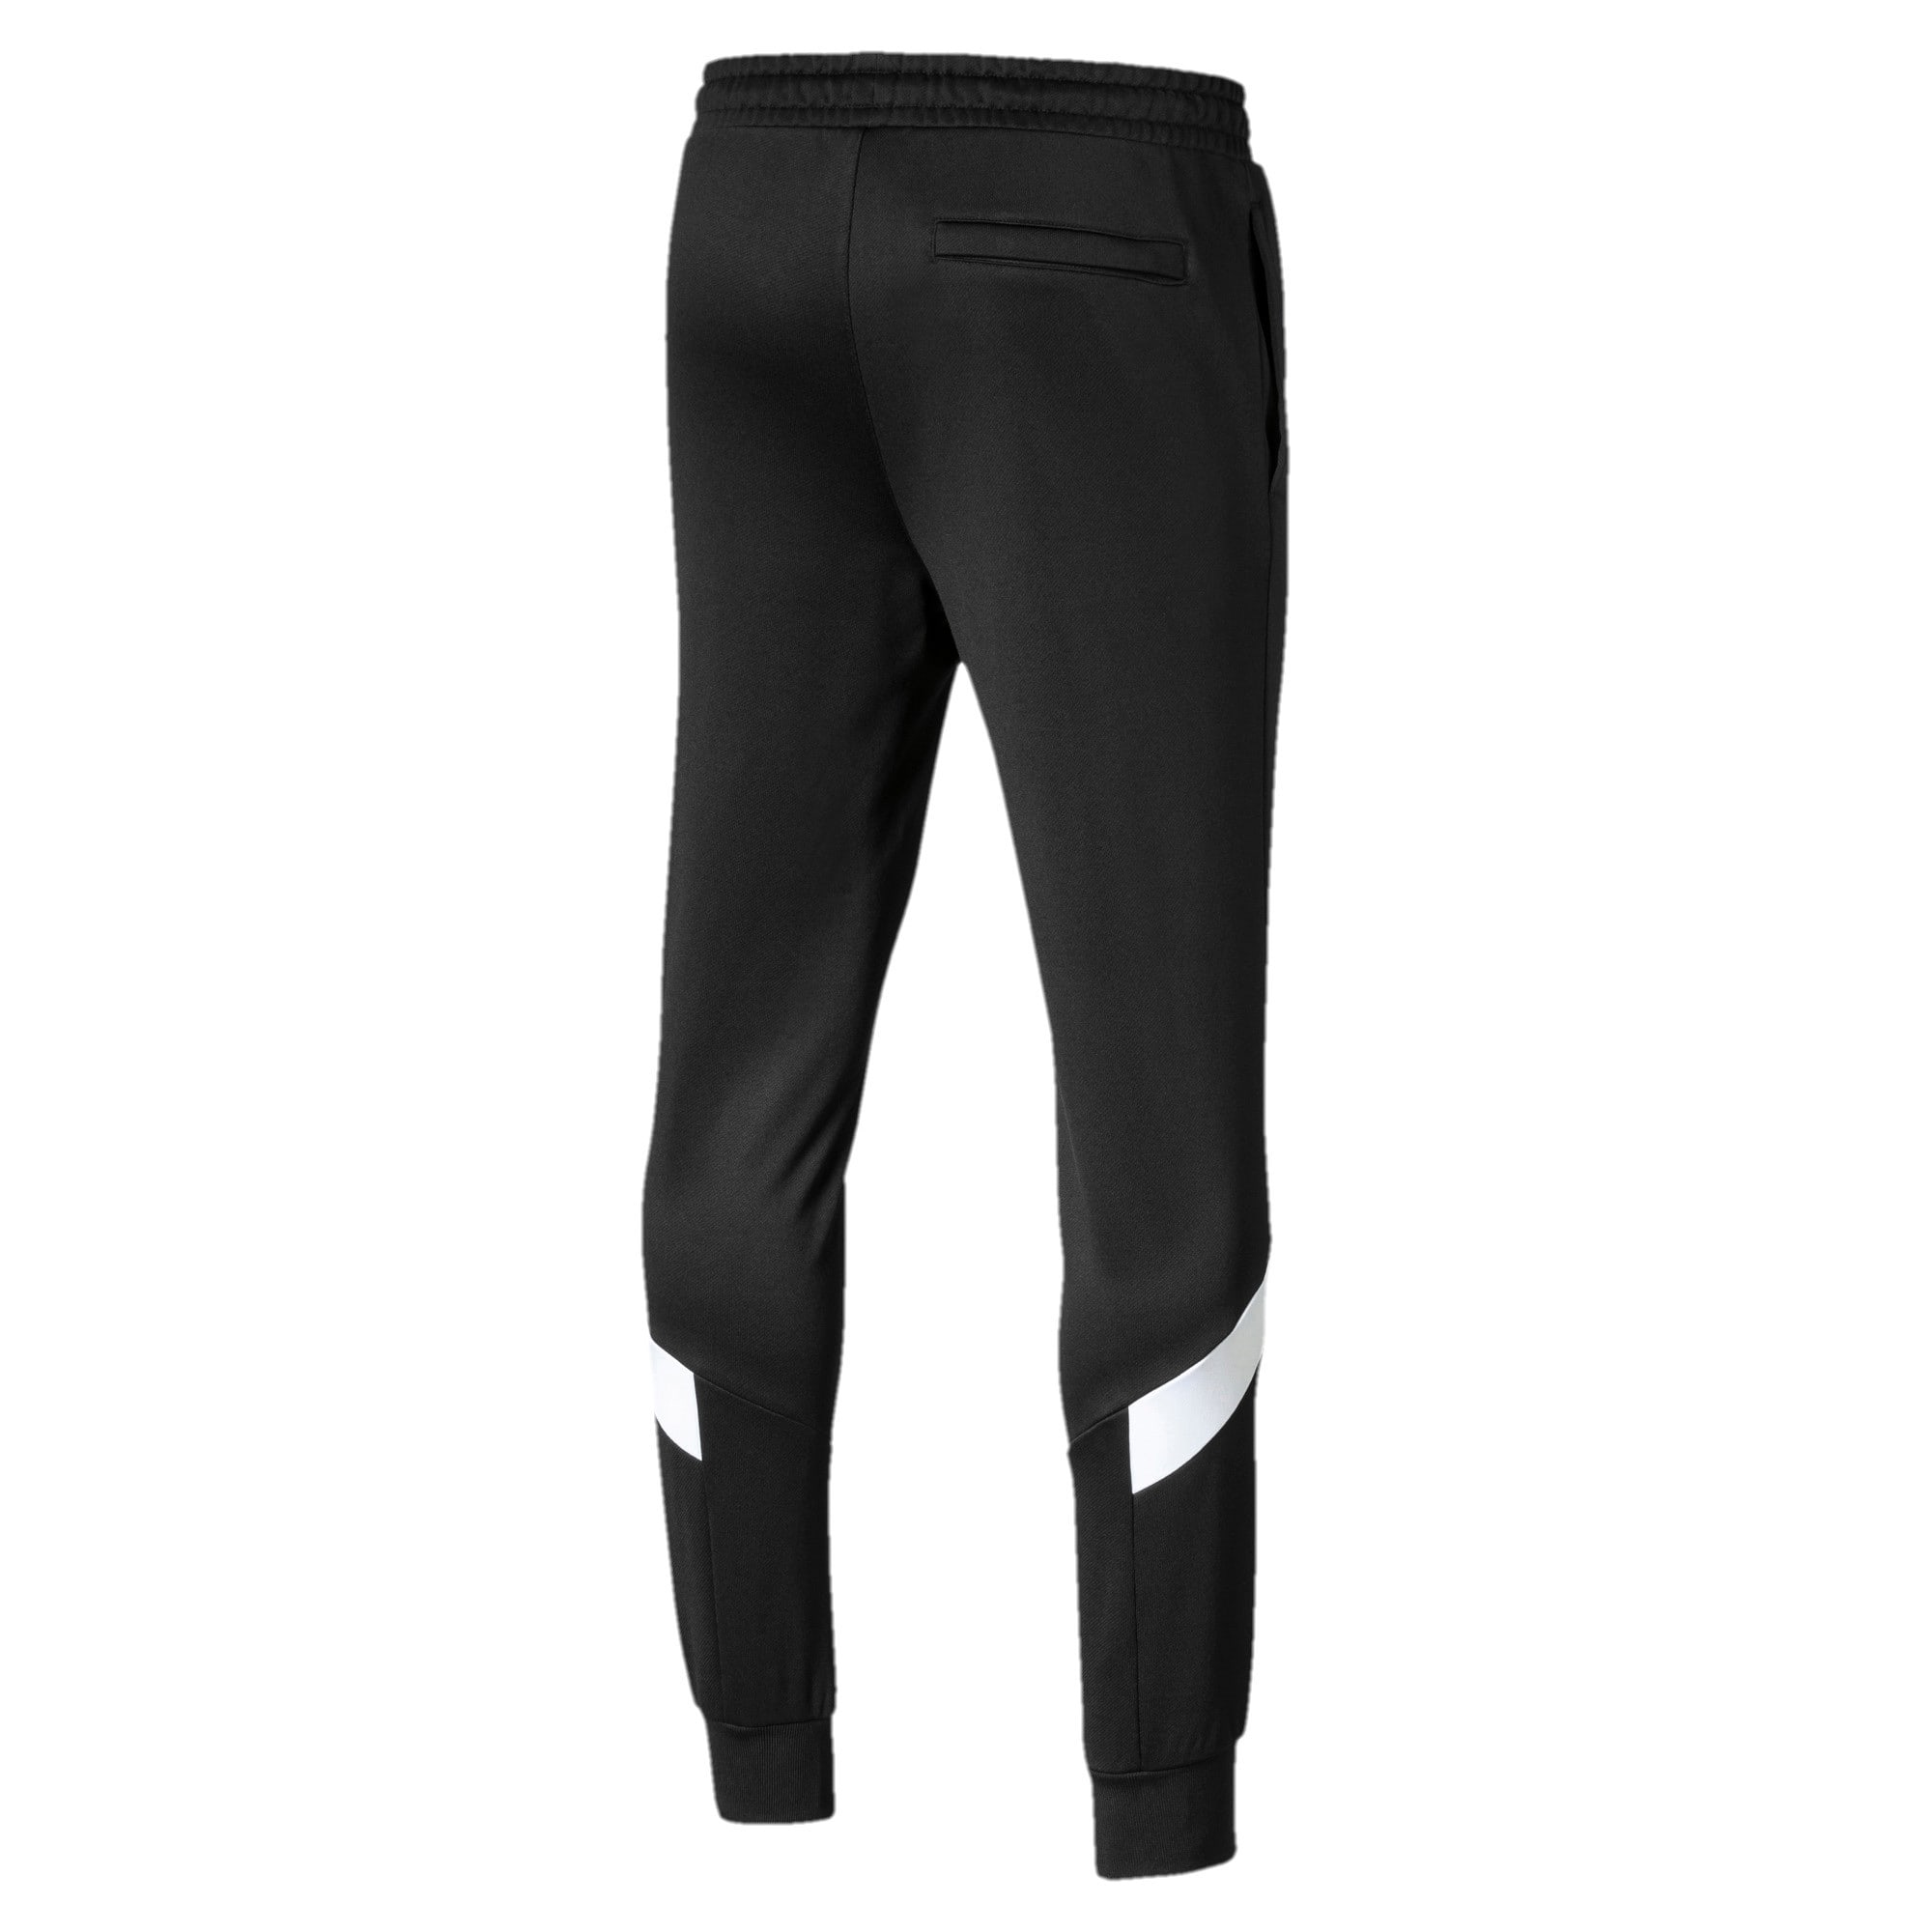 Thumbnail 5 of Iconic MCS Knitted Men's Track Pants, Puma Black, medium